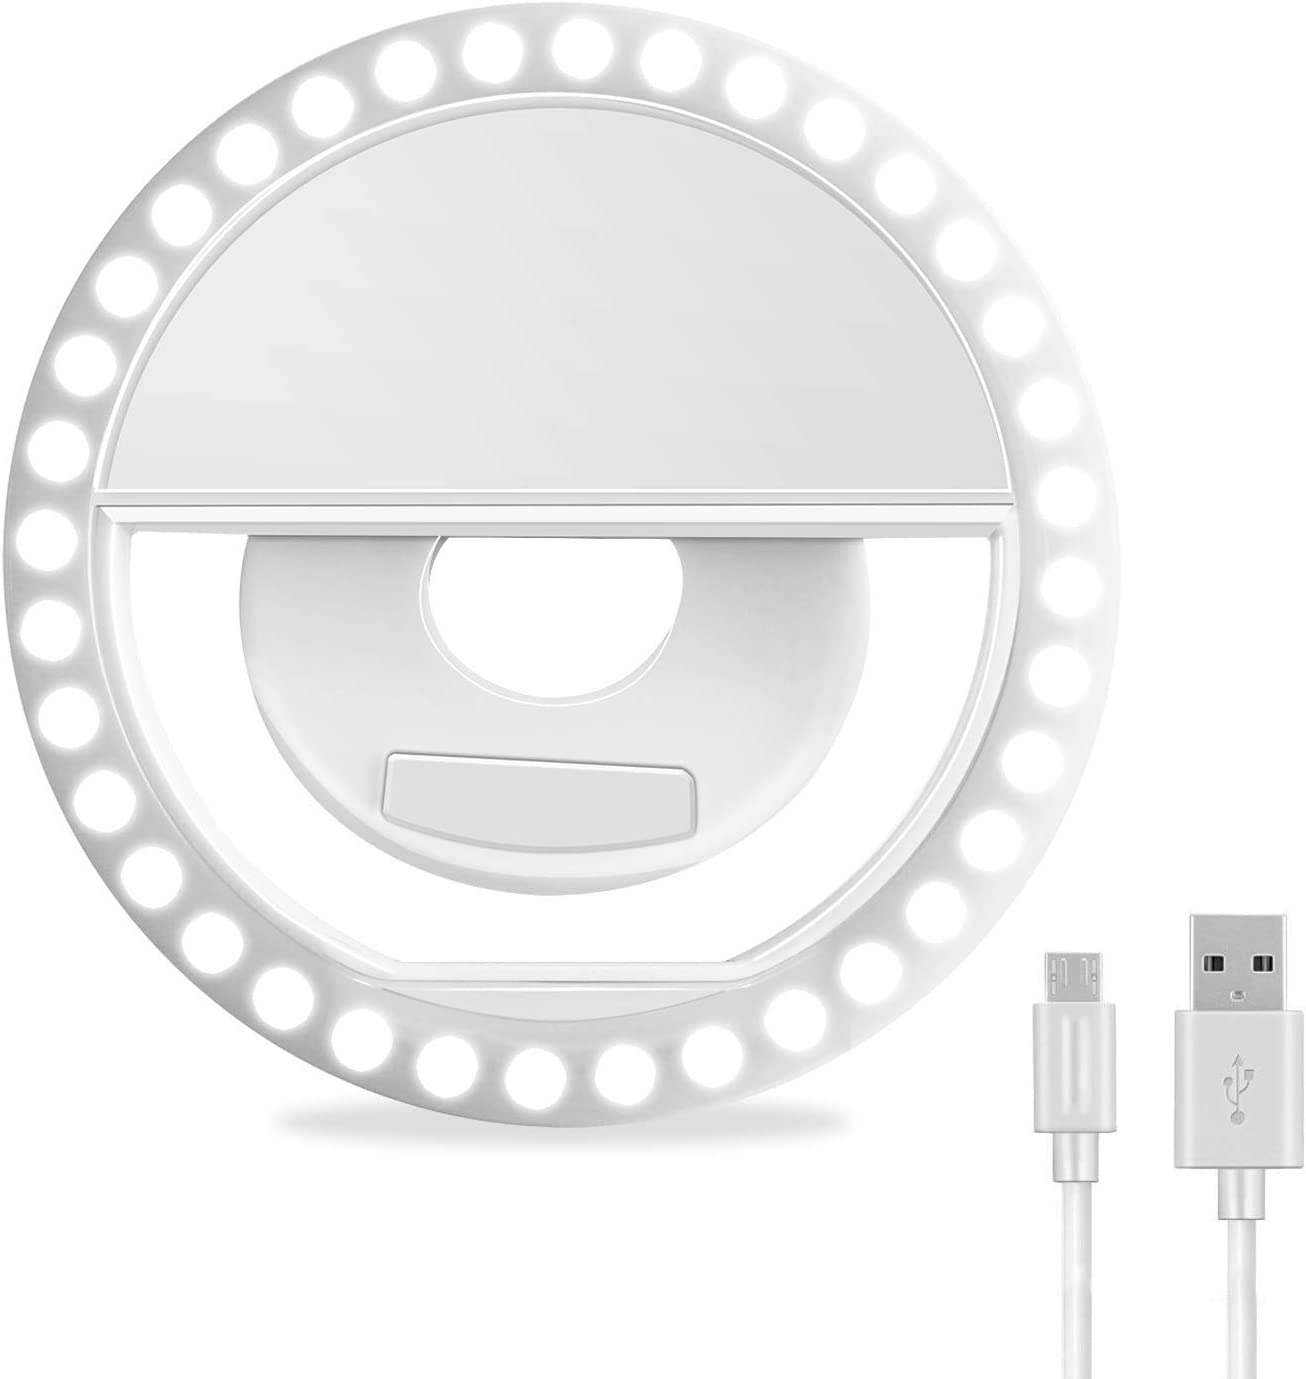 XINBAOHONG Rechargeable Portable Clip-on Selfie Ring Light for iPhone & Android Smart Phone Photography